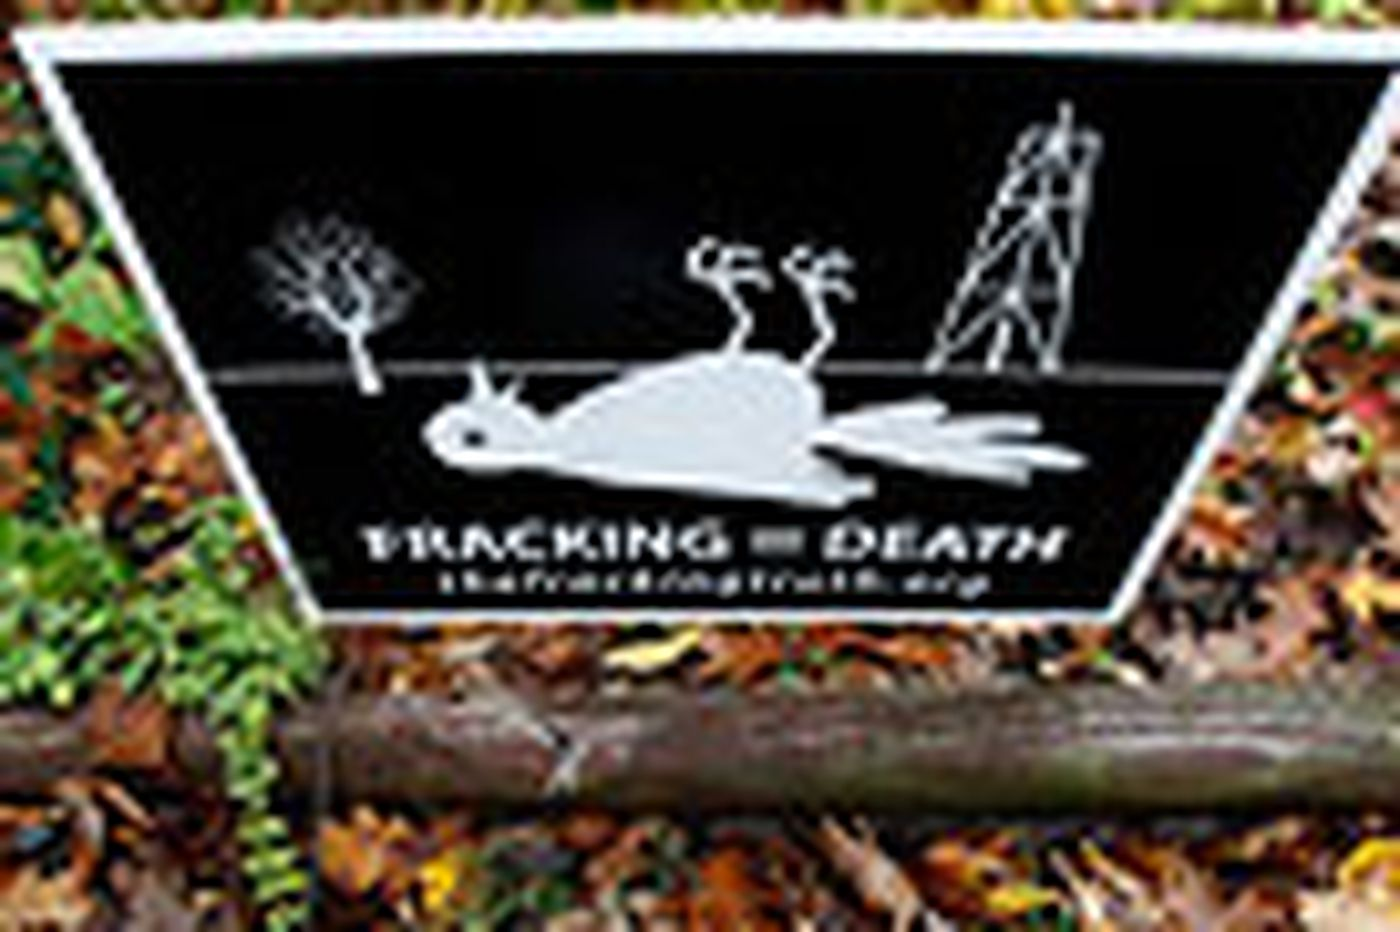 Marcellus drillers say EPA wastewater proposal is moot